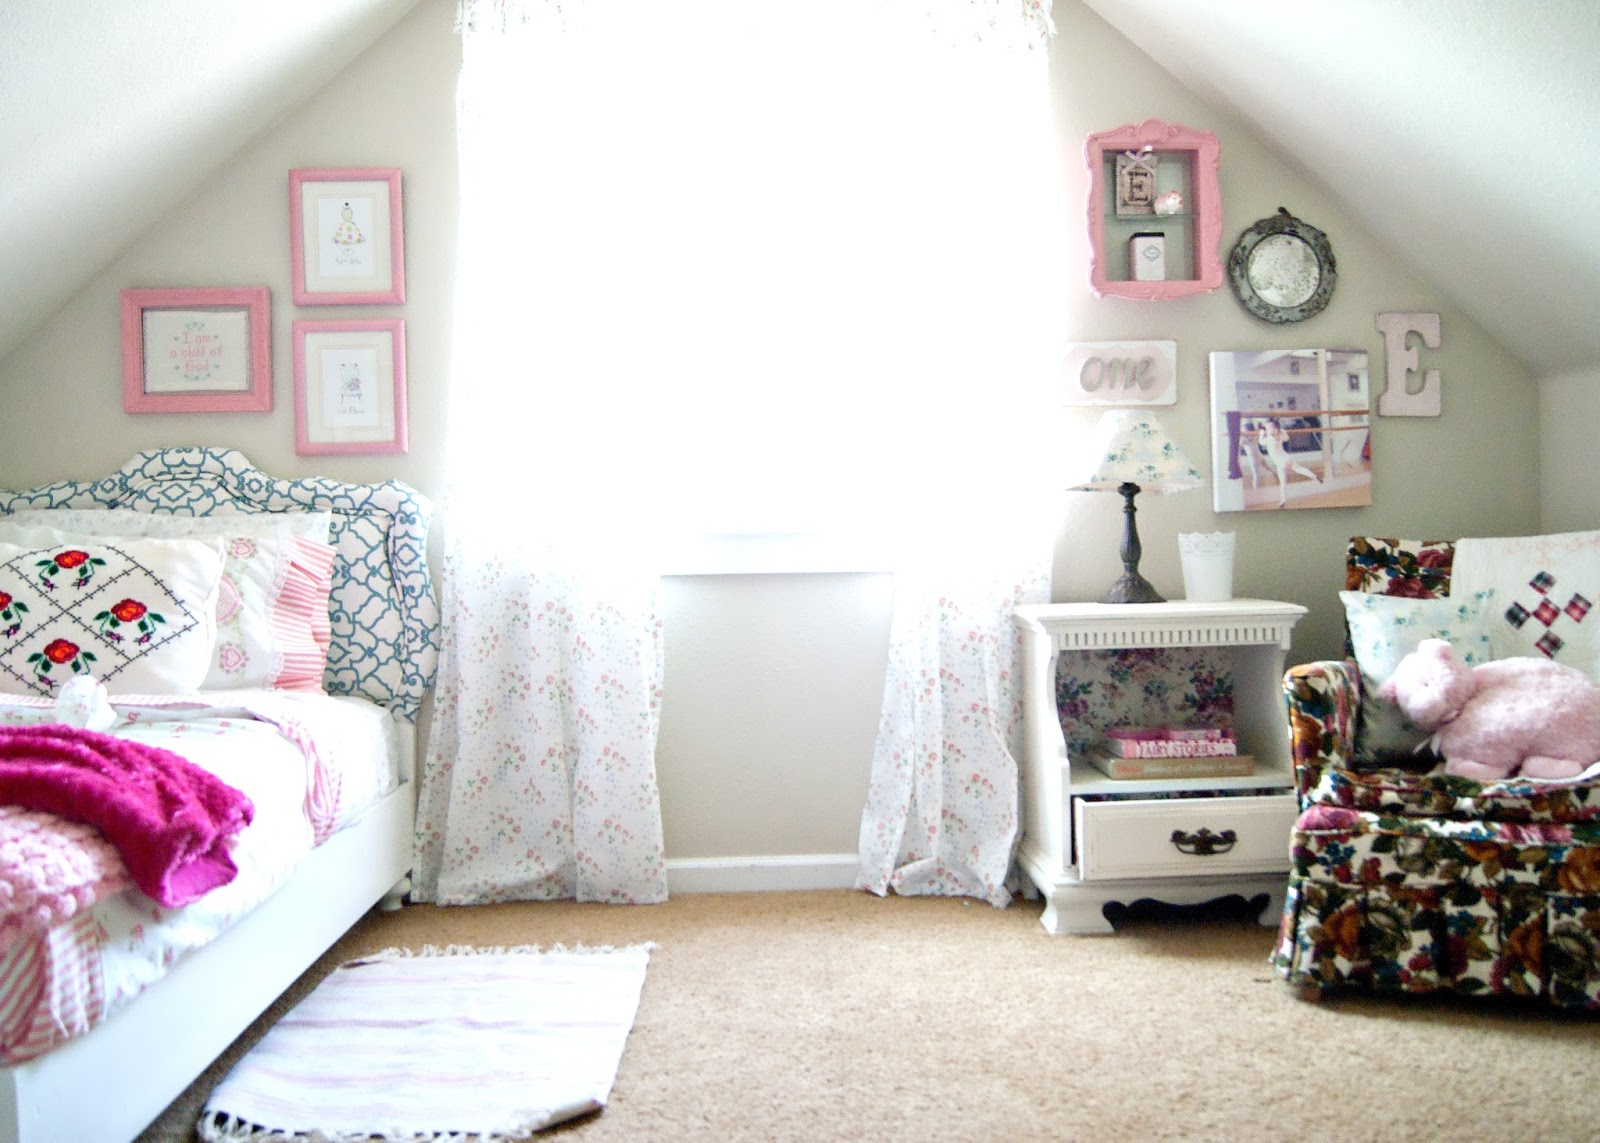 Granny Chic Bedroom - After